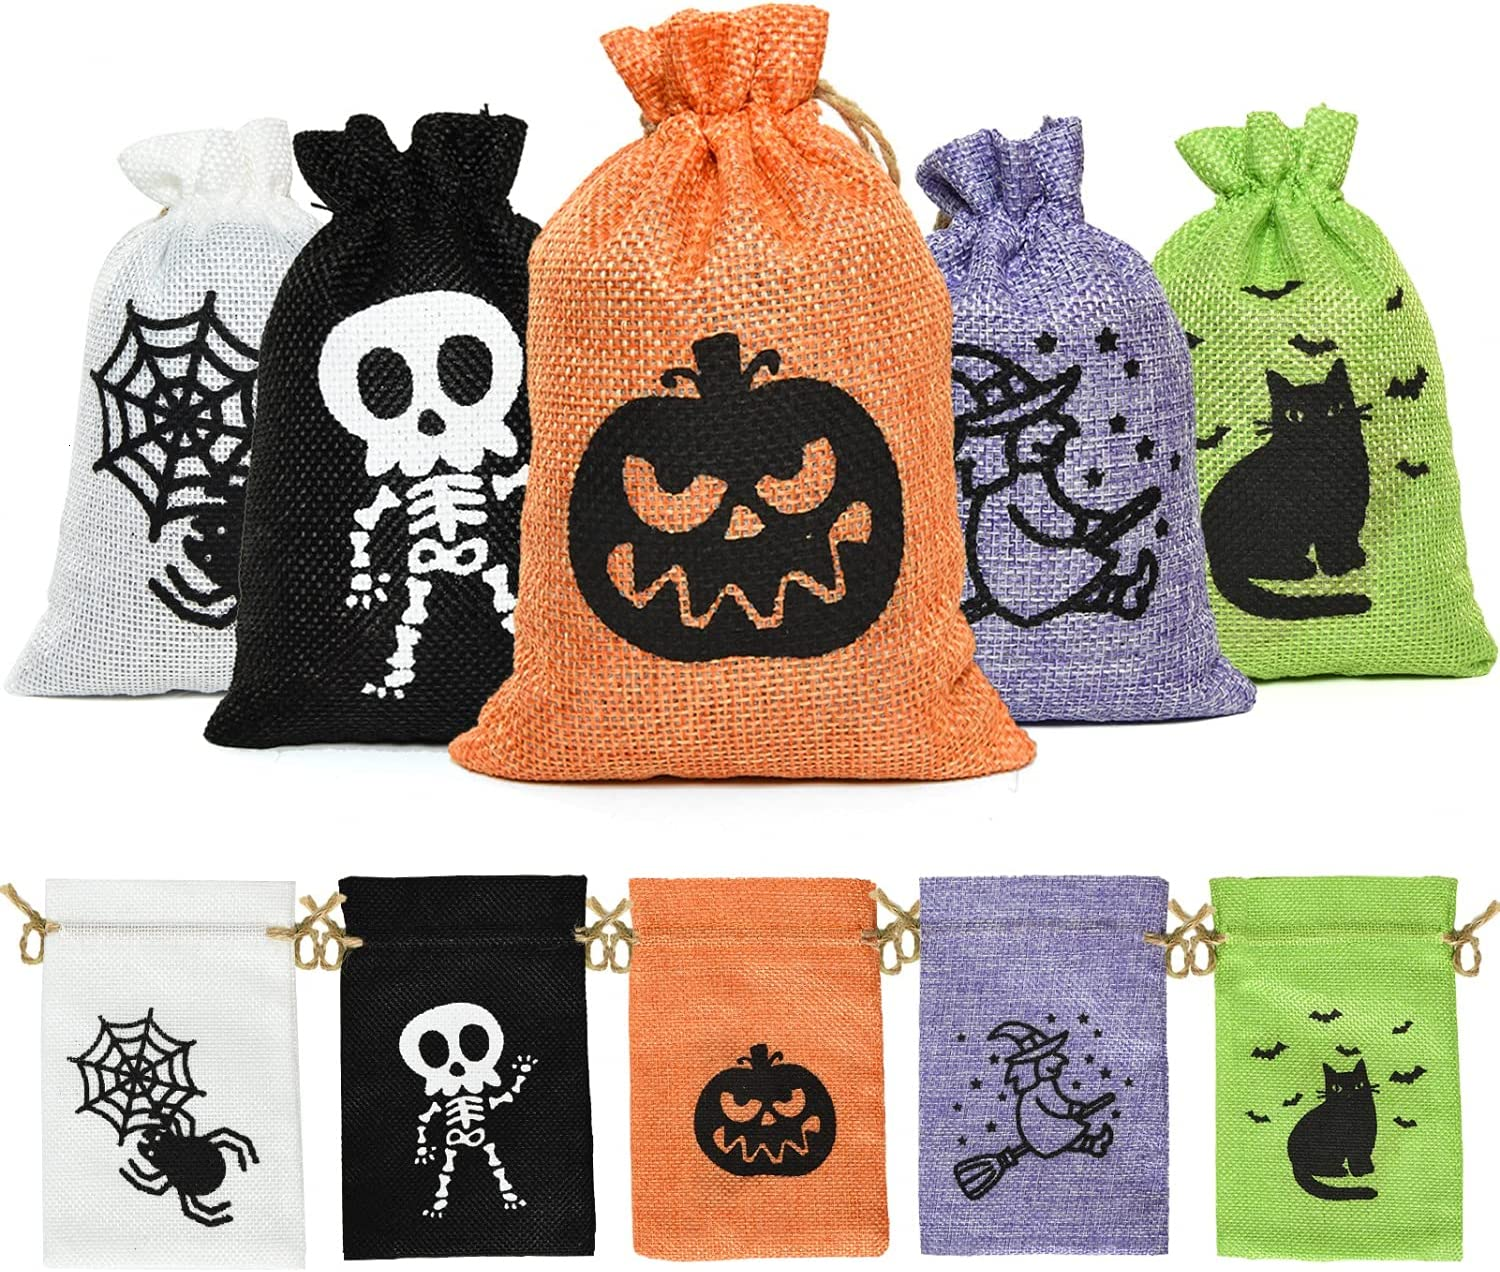 JETEHO Halloween Treat Burlap Bags, 50 PCS Halloween Candy Bags with Drawstrings Goodie Gift Bags for Kids, Trick or Treat, Party Favor, Halloween Party Supplies